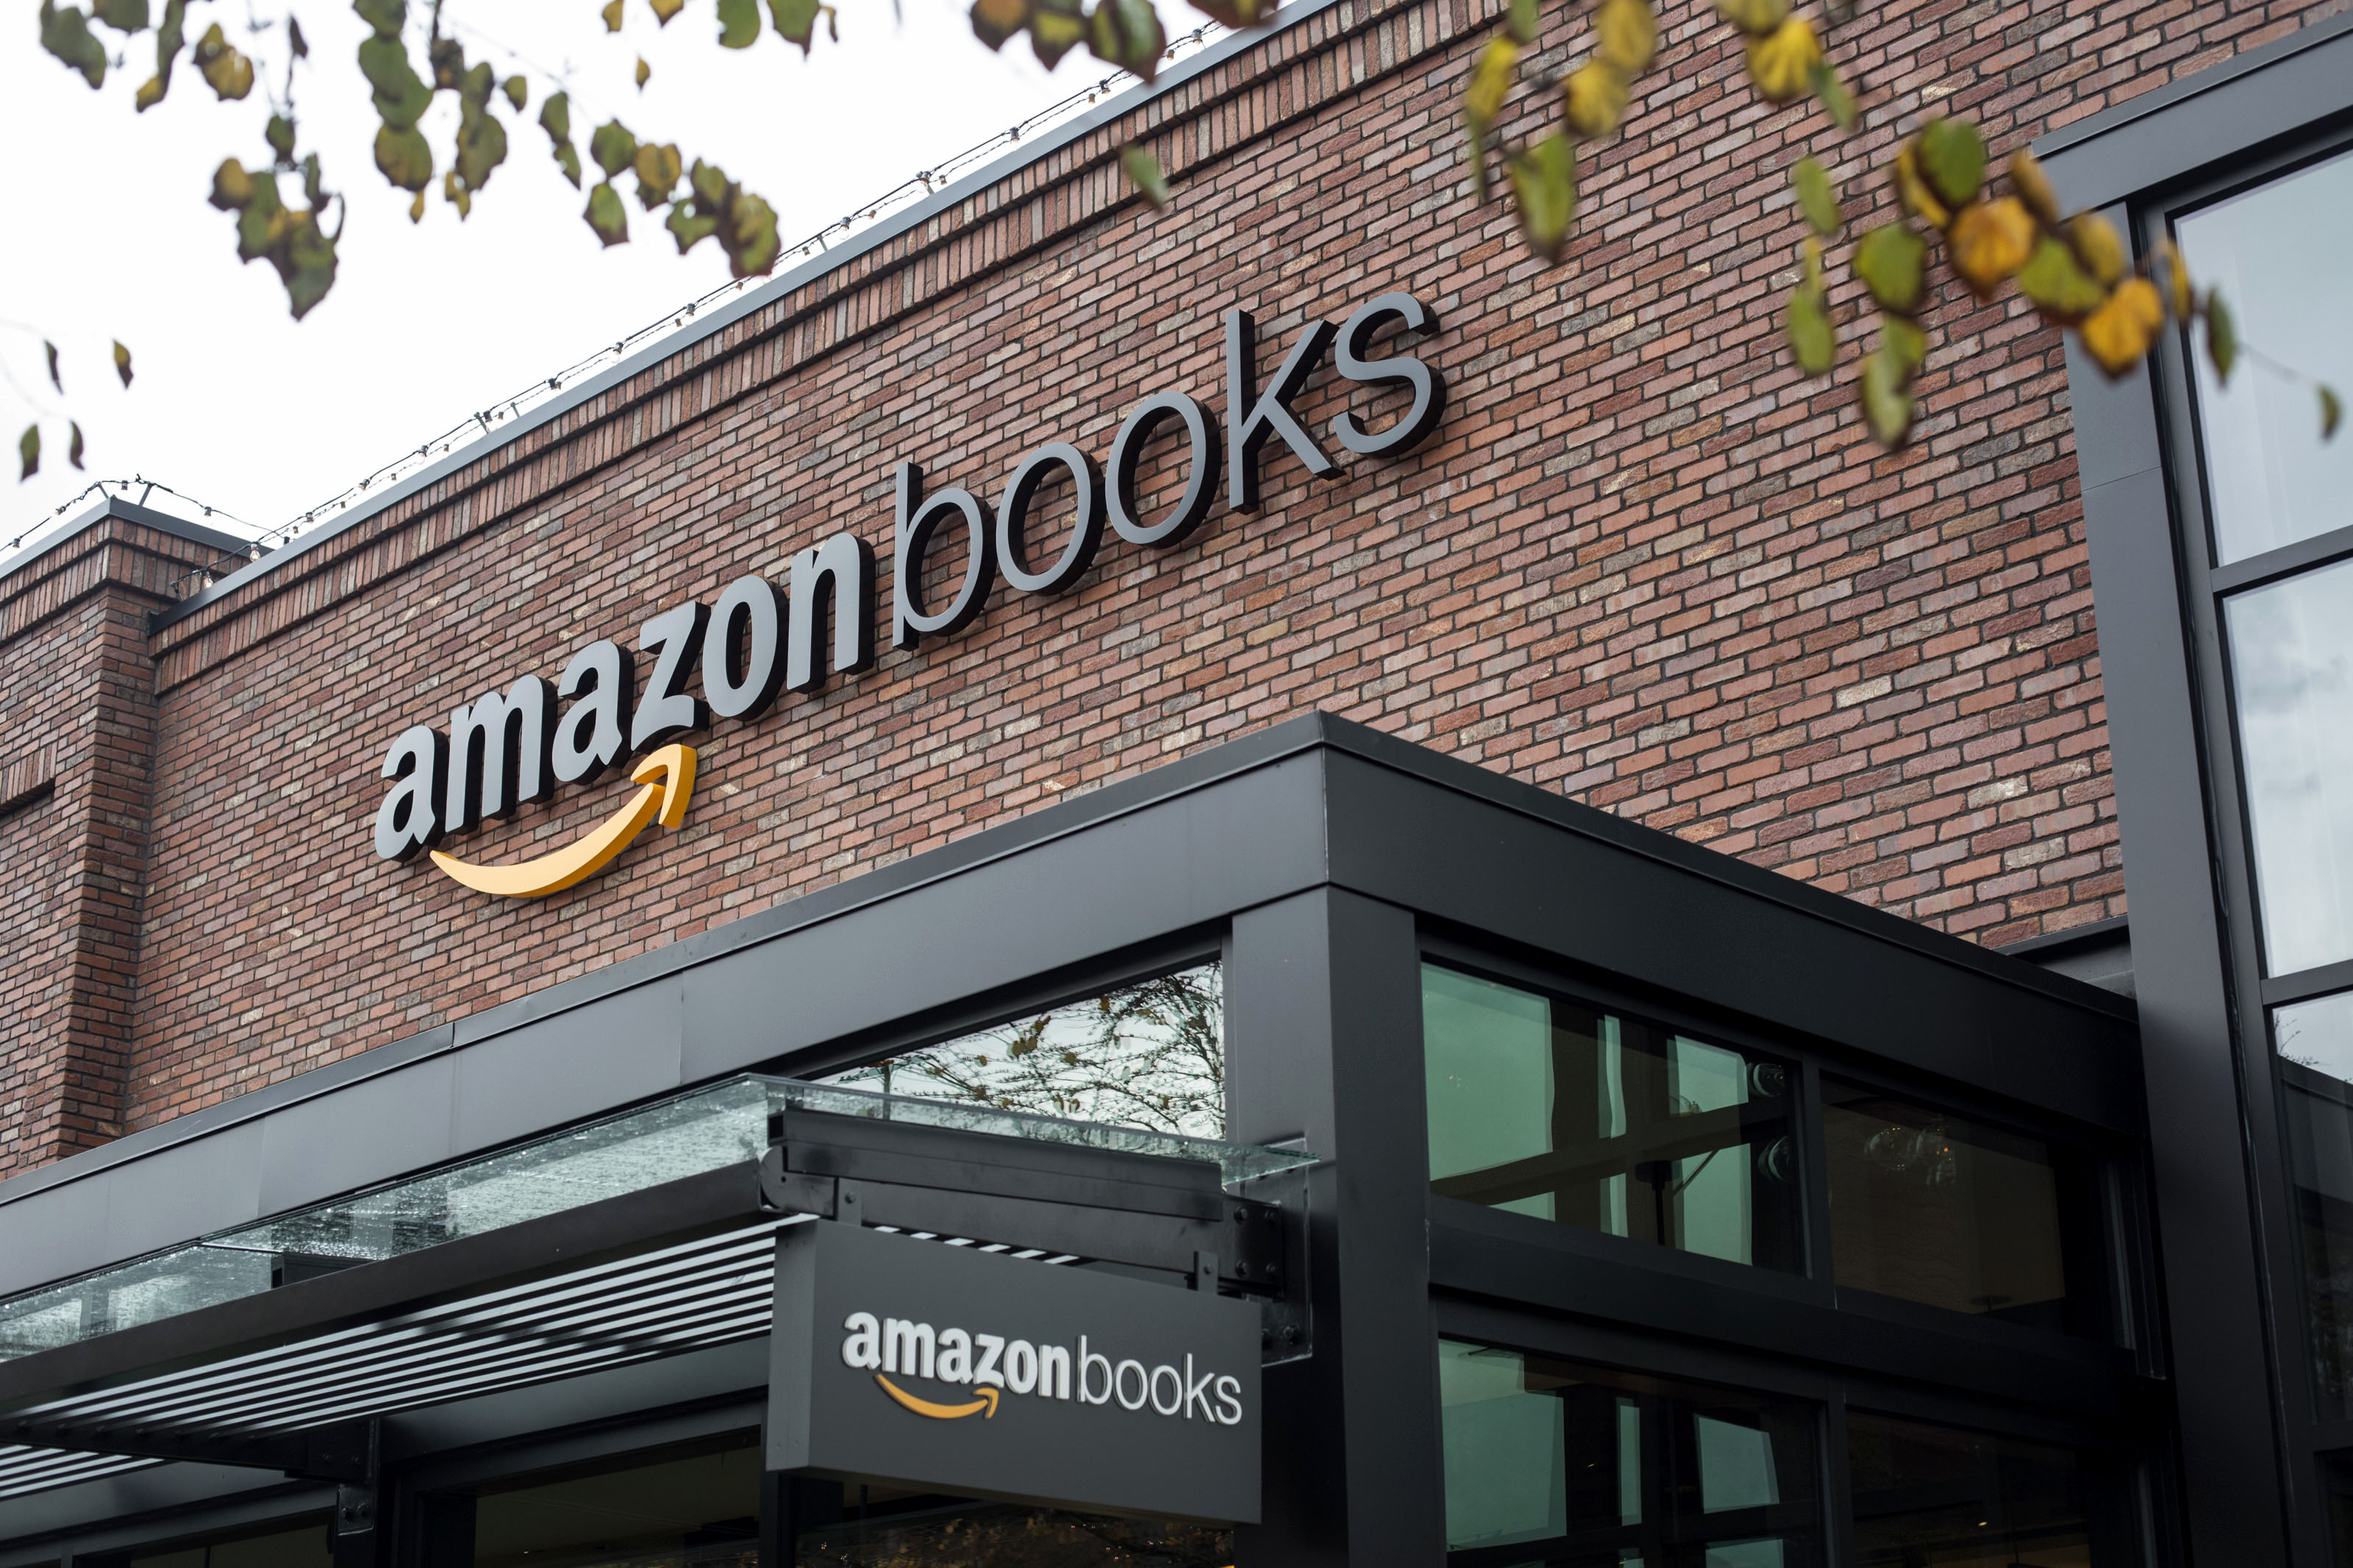 The exterior of Amazon Books is pictured in Seattle, Washington, on Tuesday, Nov. 3, 2015. The online retailer Amazon.com Inc. opened its first brick-and-mortar location in Seattle's upscale University Village mall. Photographer: David Ryder/Bloomberg